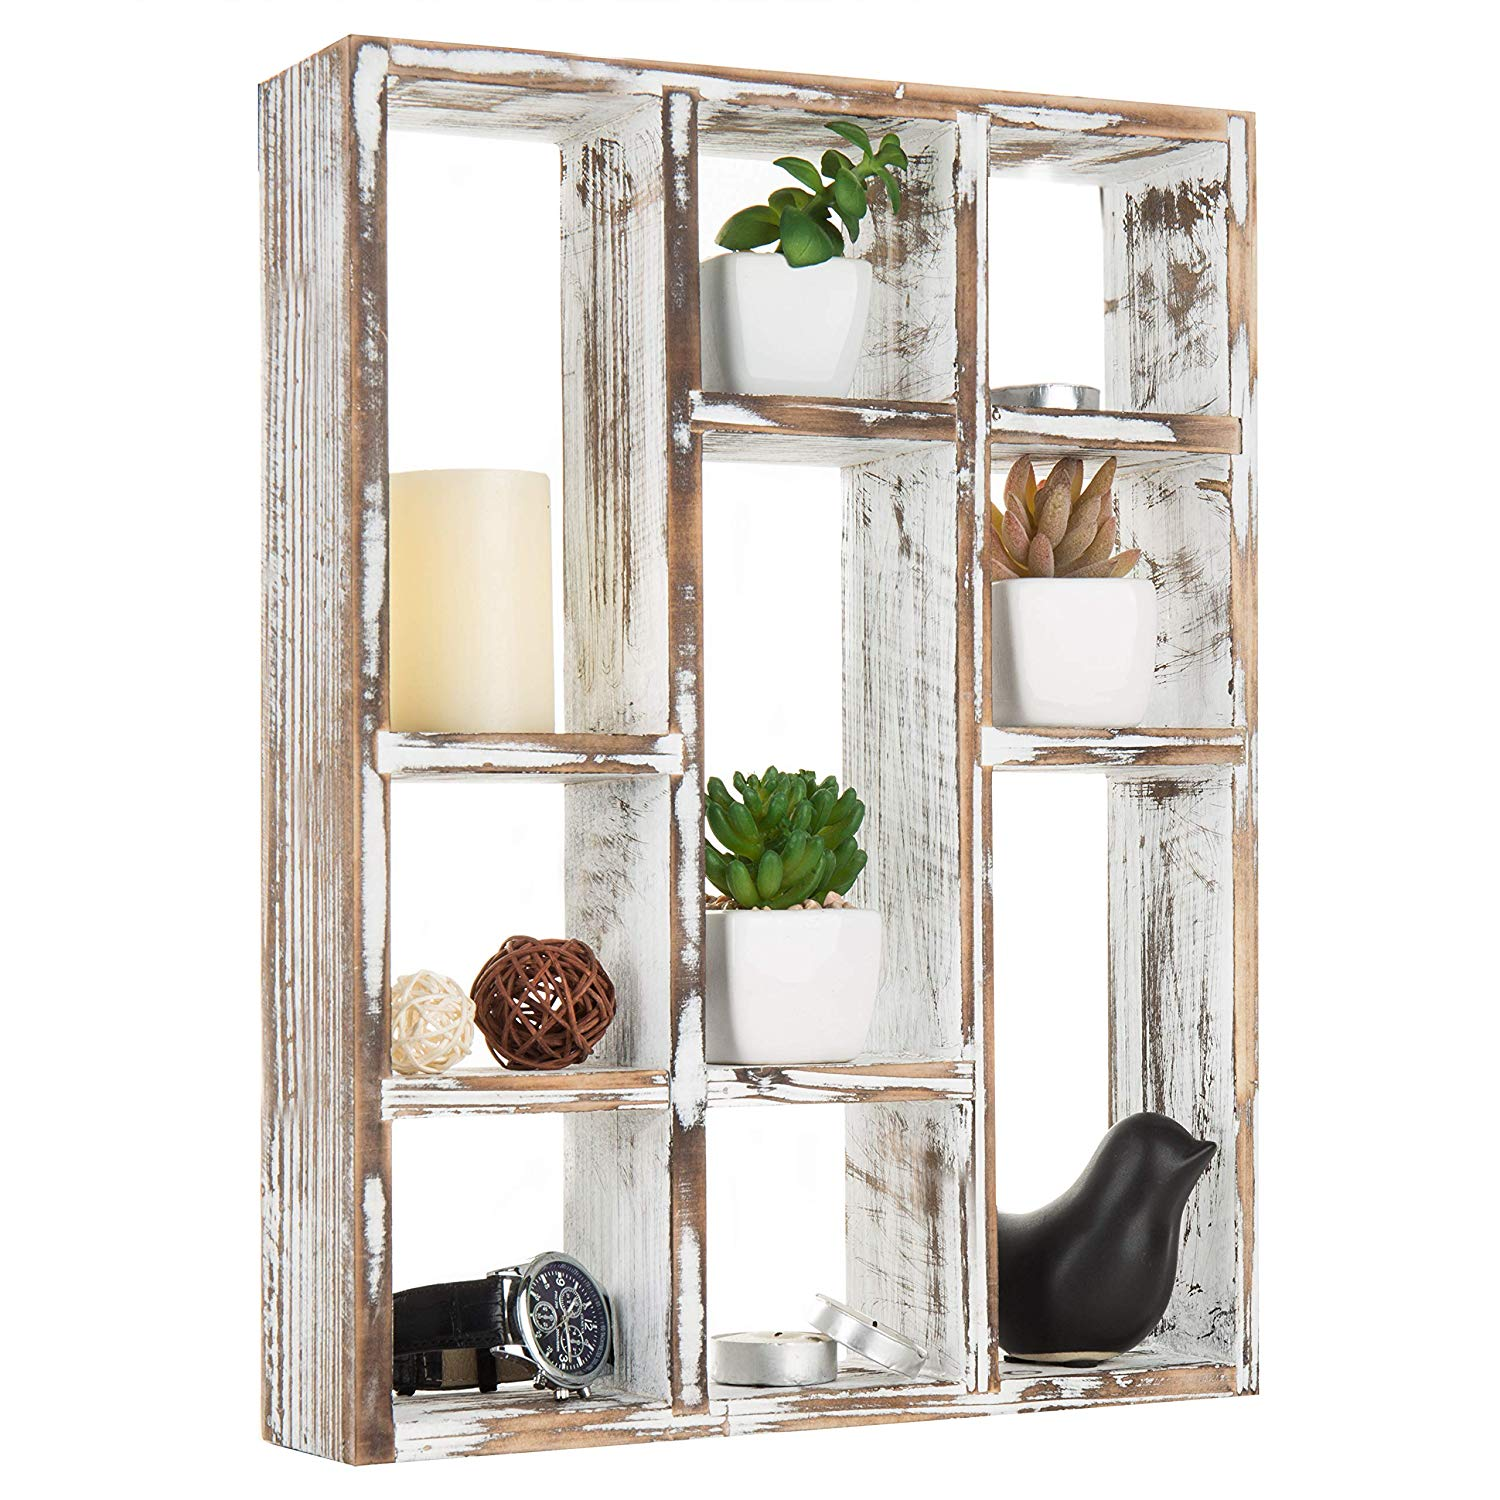 Awe Inspiring 15 Inch 9 Compartment Rustic Wooden Freestanding Wall Mountable Shadow Box Display Shelf Home Interior And Landscaping Oversignezvosmurscom